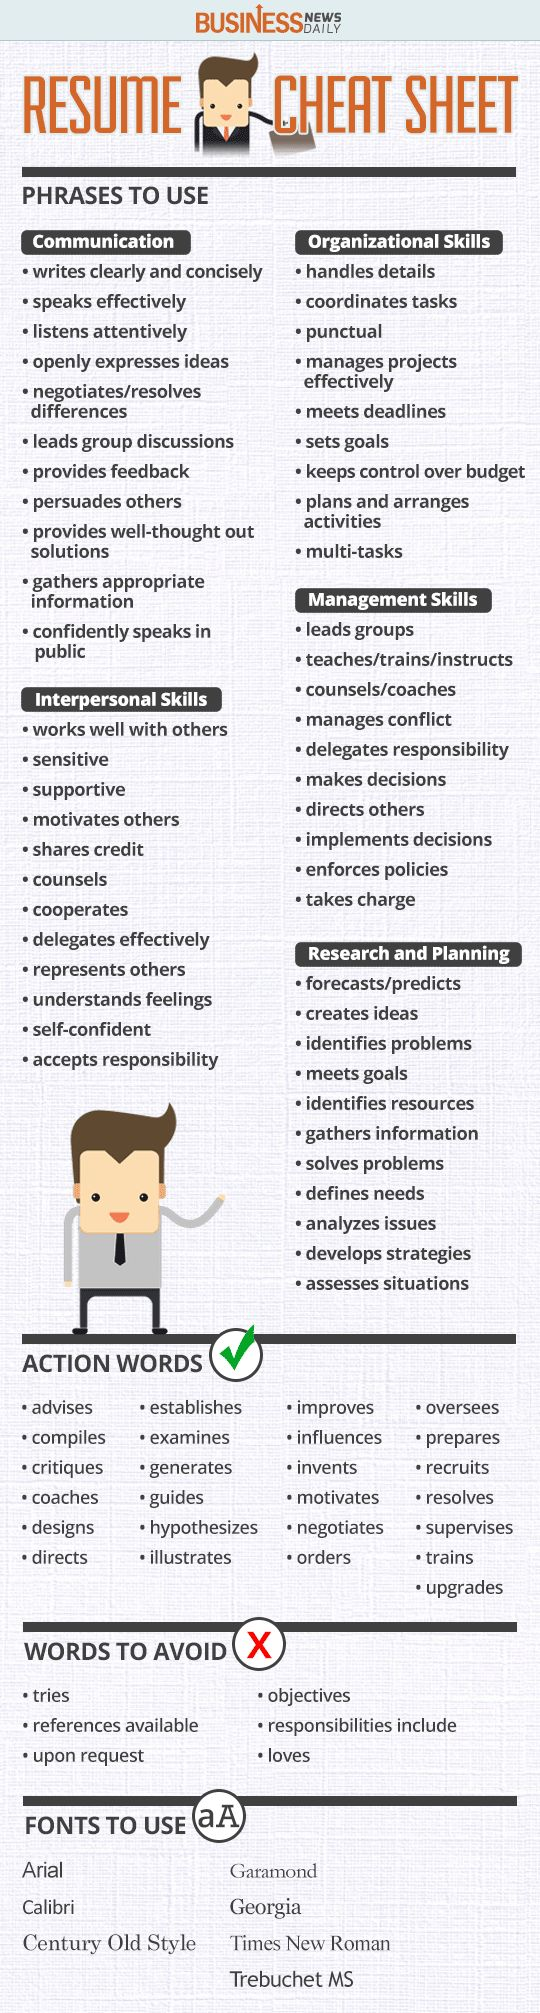 Opposenewapstandardsus  Fascinating  Ideas About Resume On Pinterest  Cv Format Resume Cv And  With Lovable Resume Cheat Sheet Infographic Andrews Almost Done With A Complete Unit On Employment Which With Charming Marketing Resume Example Also How To Make A Resume Without Experience In Addition Payroll Clerk Resume And Sample Accountant Resume As Well As What Employers Look For In A Resume Additionally Inventory Specialist Resume From Pinterestcom With Opposenewapstandardsus  Lovable  Ideas About Resume On Pinterest  Cv Format Resume Cv And  With Charming Resume Cheat Sheet Infographic Andrews Almost Done With A Complete Unit On Employment Which And Fascinating Marketing Resume Example Also How To Make A Resume Without Experience In Addition Payroll Clerk Resume From Pinterestcom